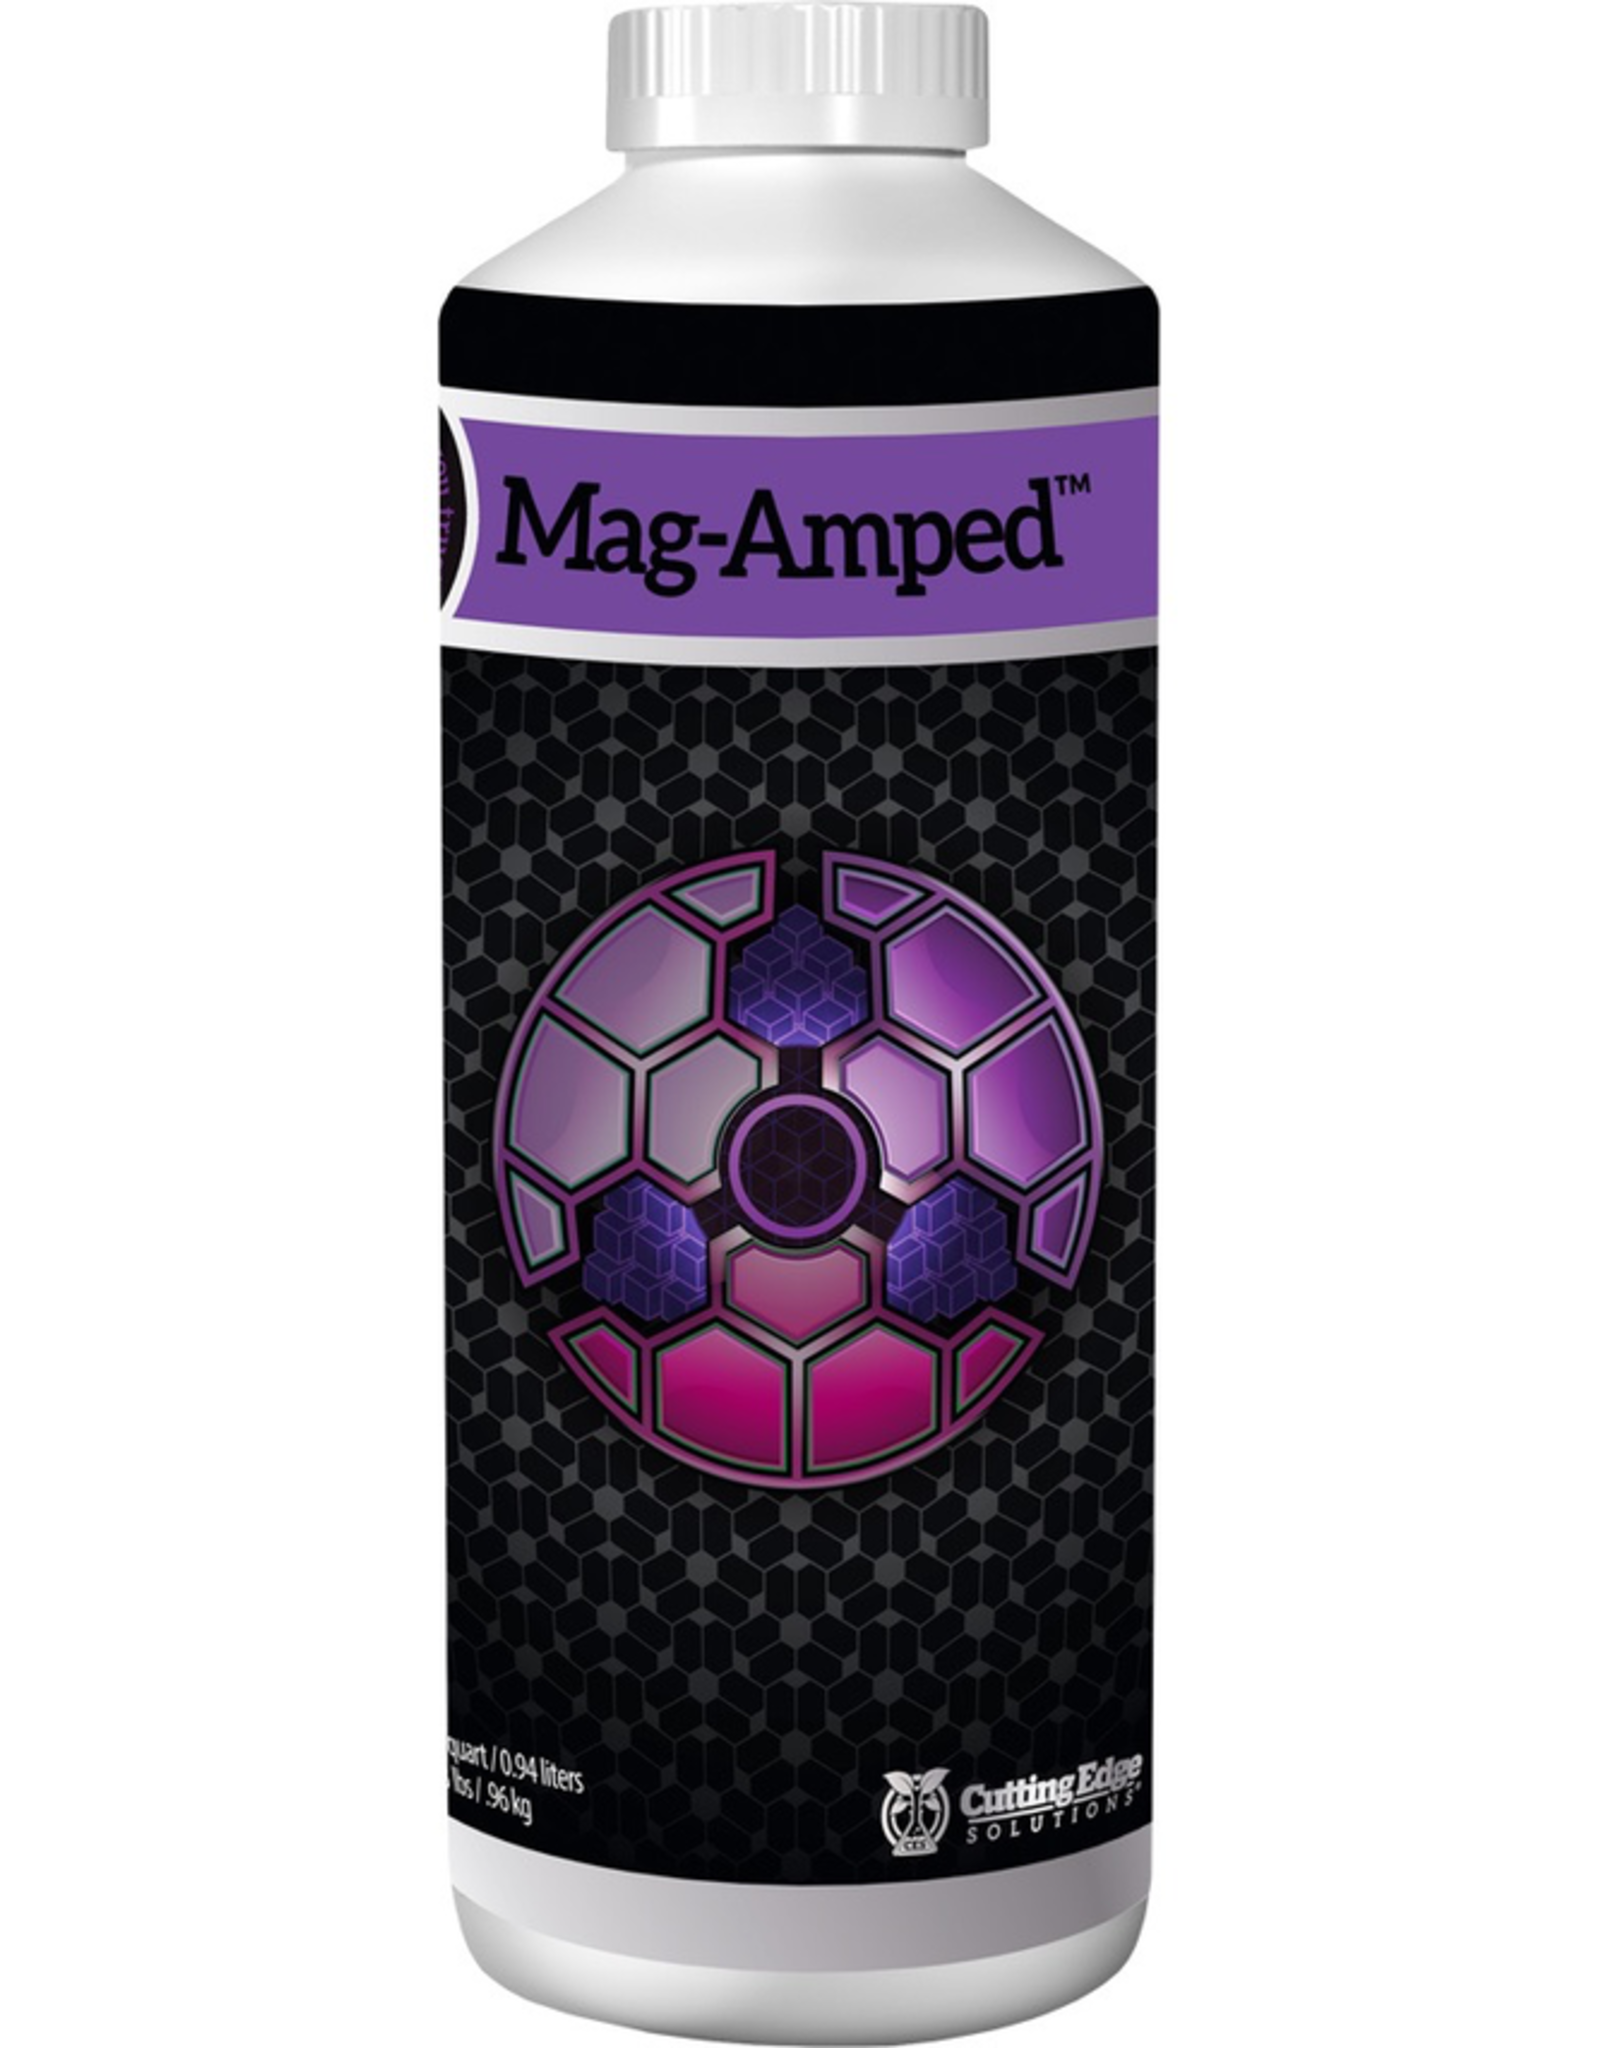 CUTTING EDGE Cutting Edge Solutions Mag-Amped, 1 qt<br /> <br /> Brand: